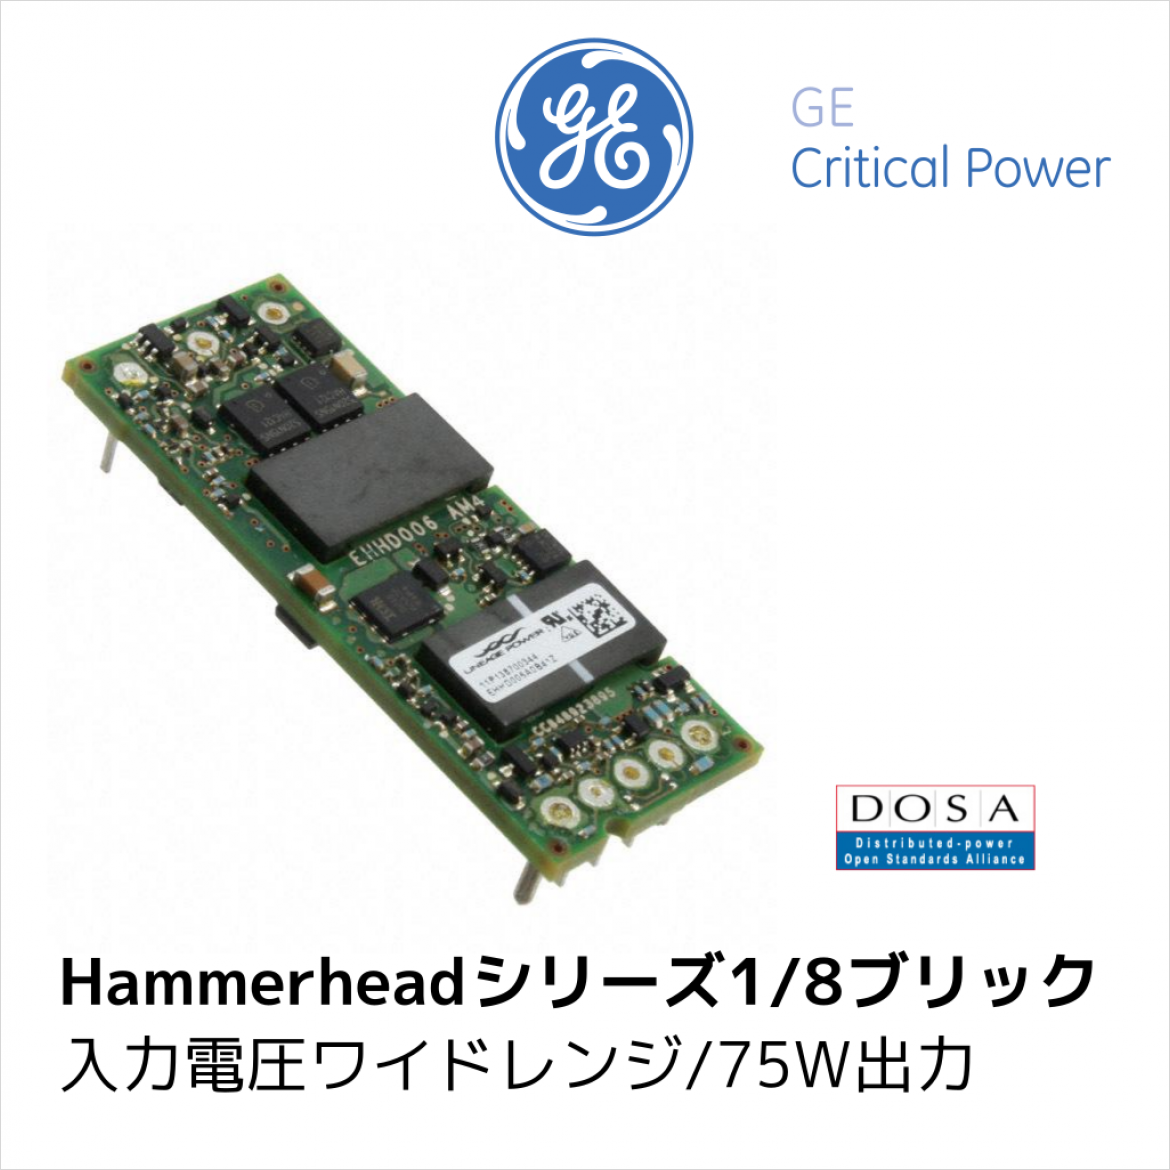 GE Critical Power 社製 Hammerhead シリーズ